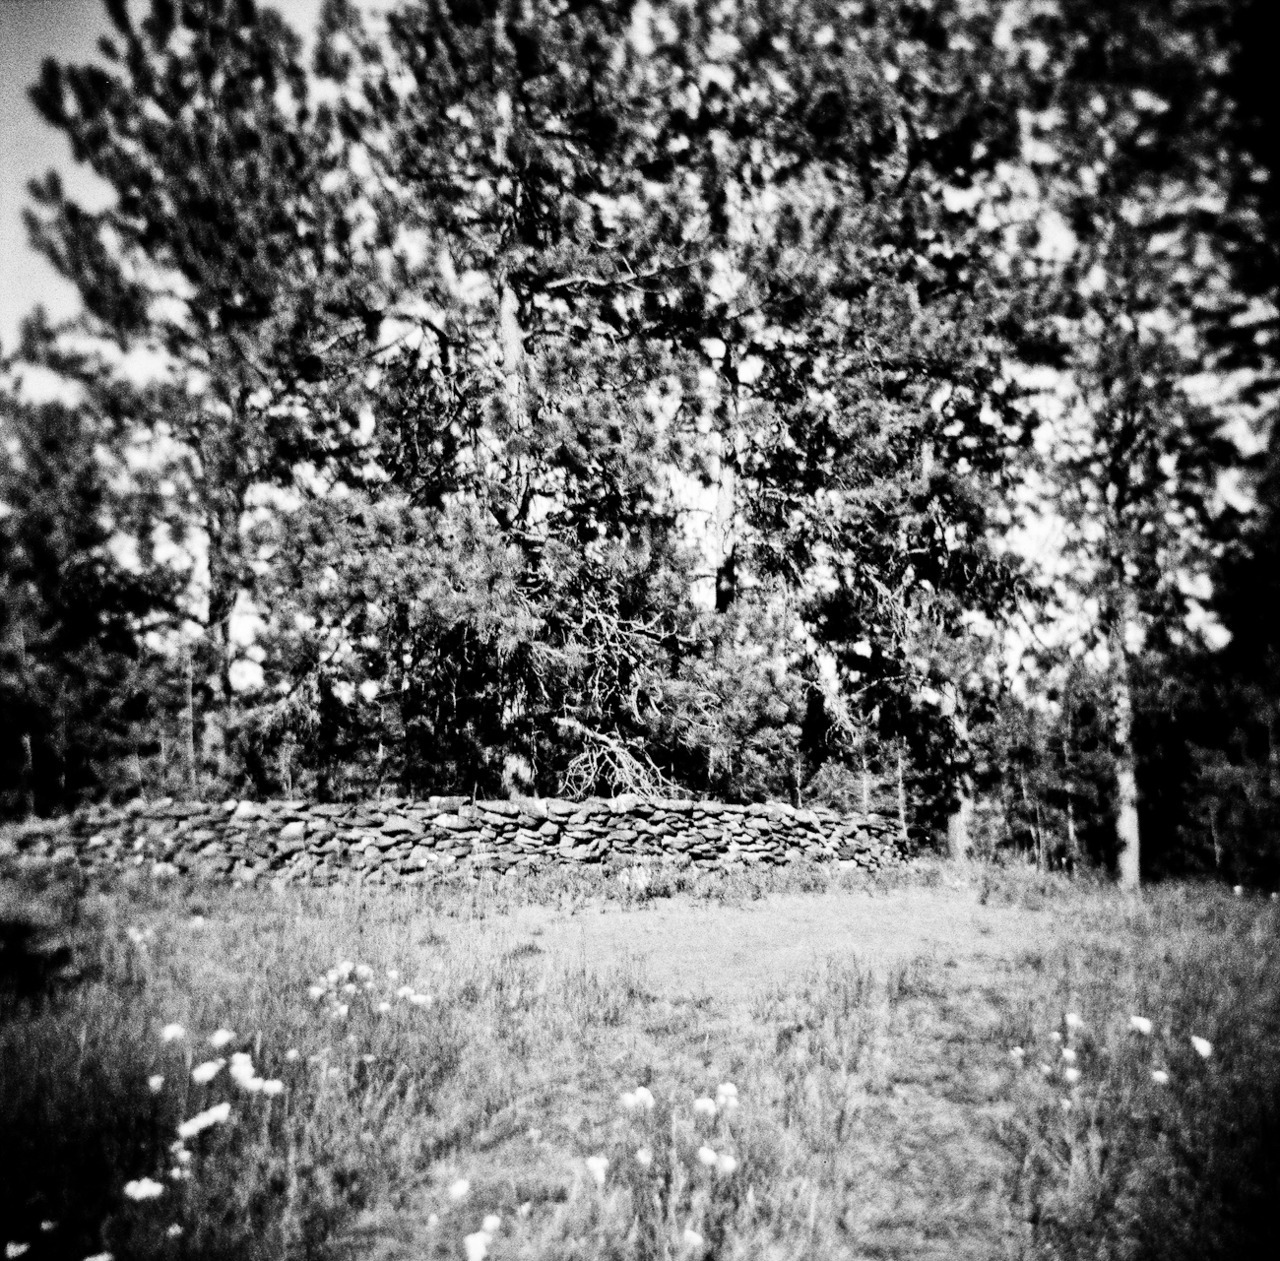 Rock Wall in Cheney WA  holga photo by tsparks